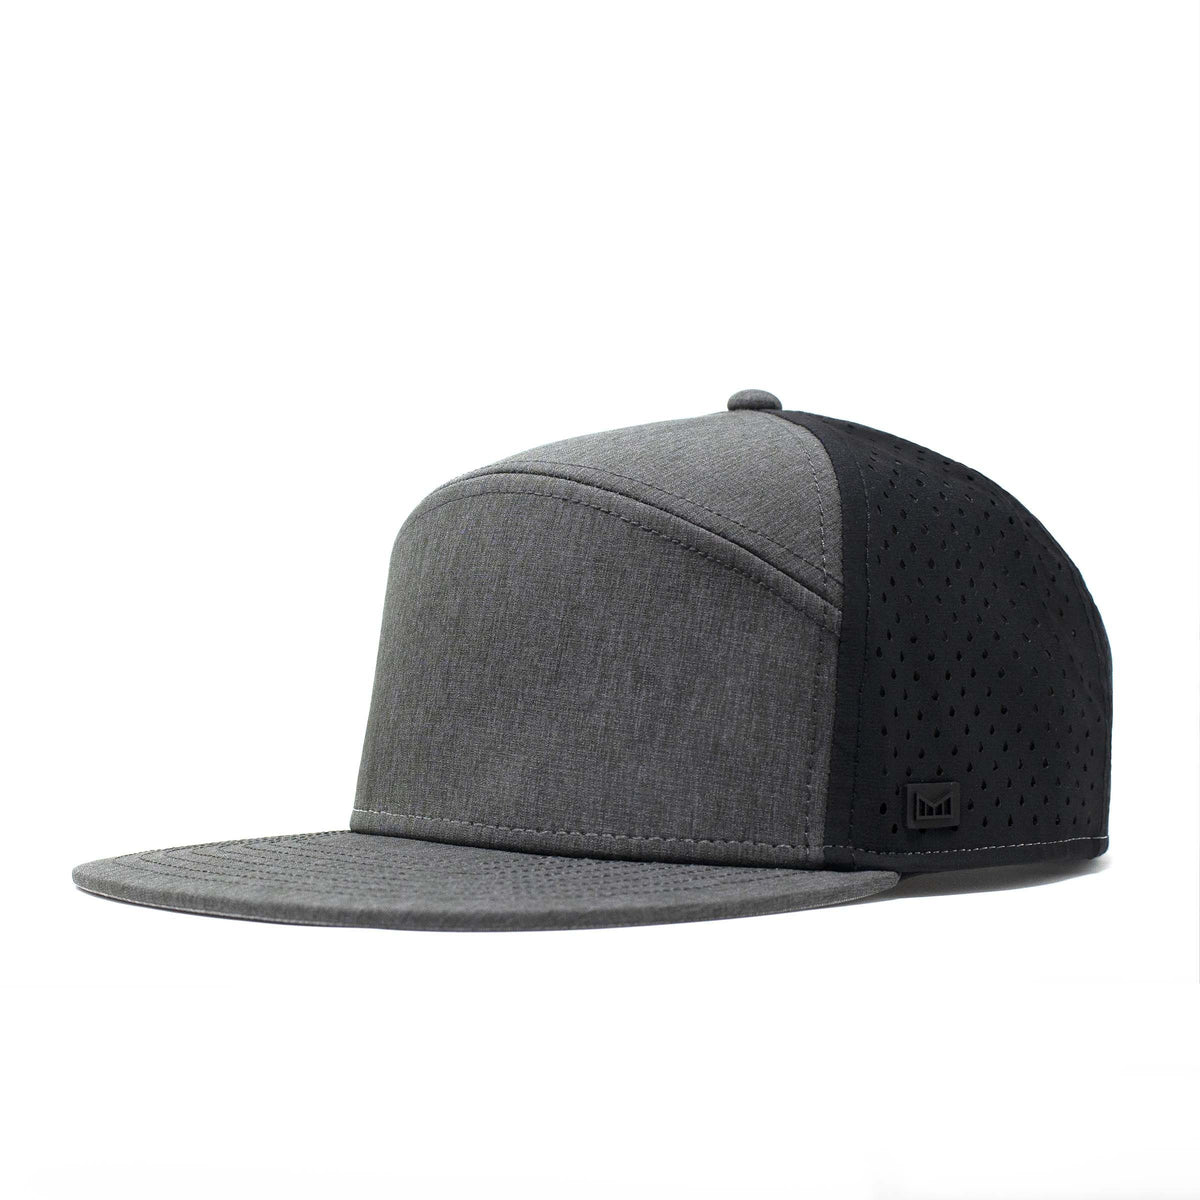 Heather Charcoal / Classic-1